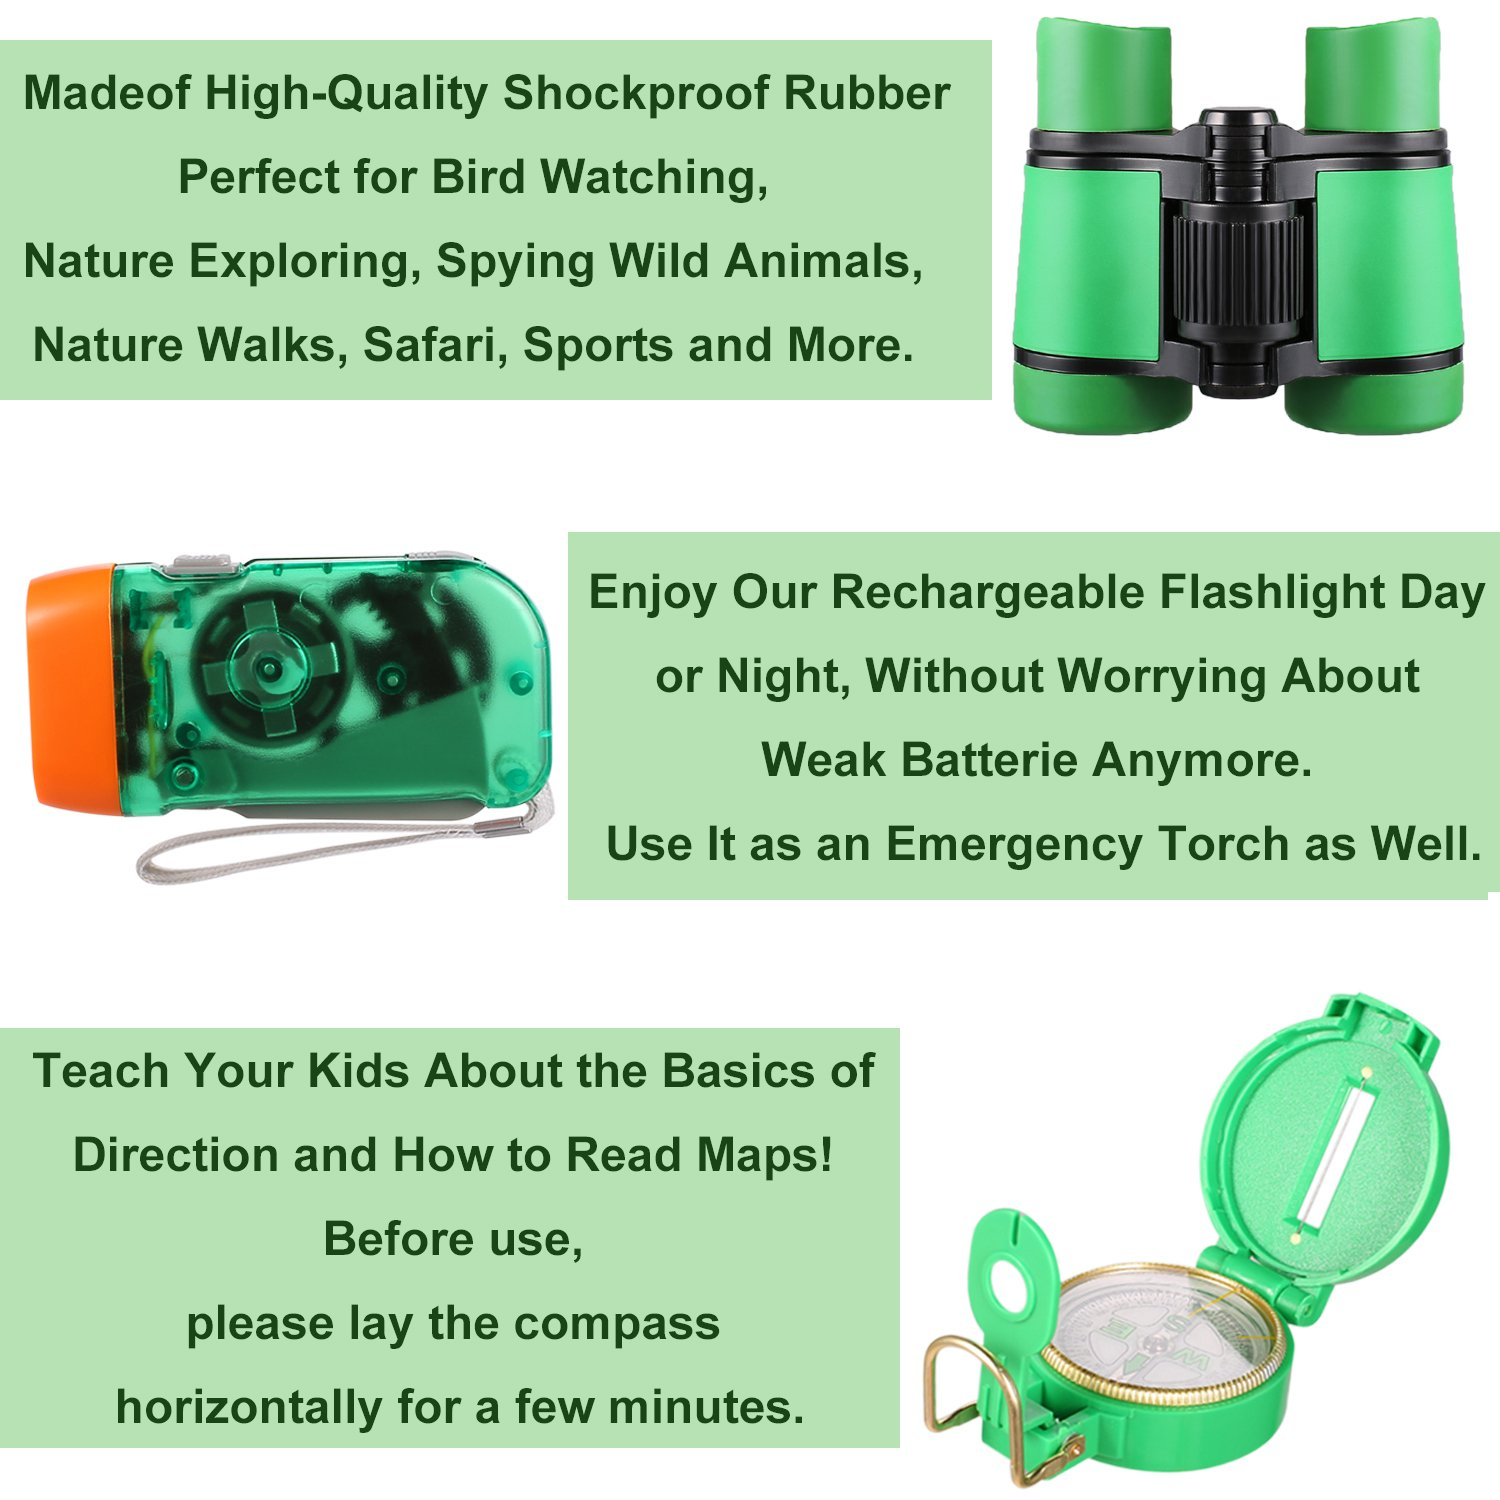 Outdoor Adventure Set for Kids - Explorer Kit, Educational Toys, Binoculars, Flashlight, Compass, Magnifying Glass, Butterfly Net, Tweezers, Bug Viewer, Whistle, Gift Set For Camping Hiking Backyard by Harlerbo (Image #5)